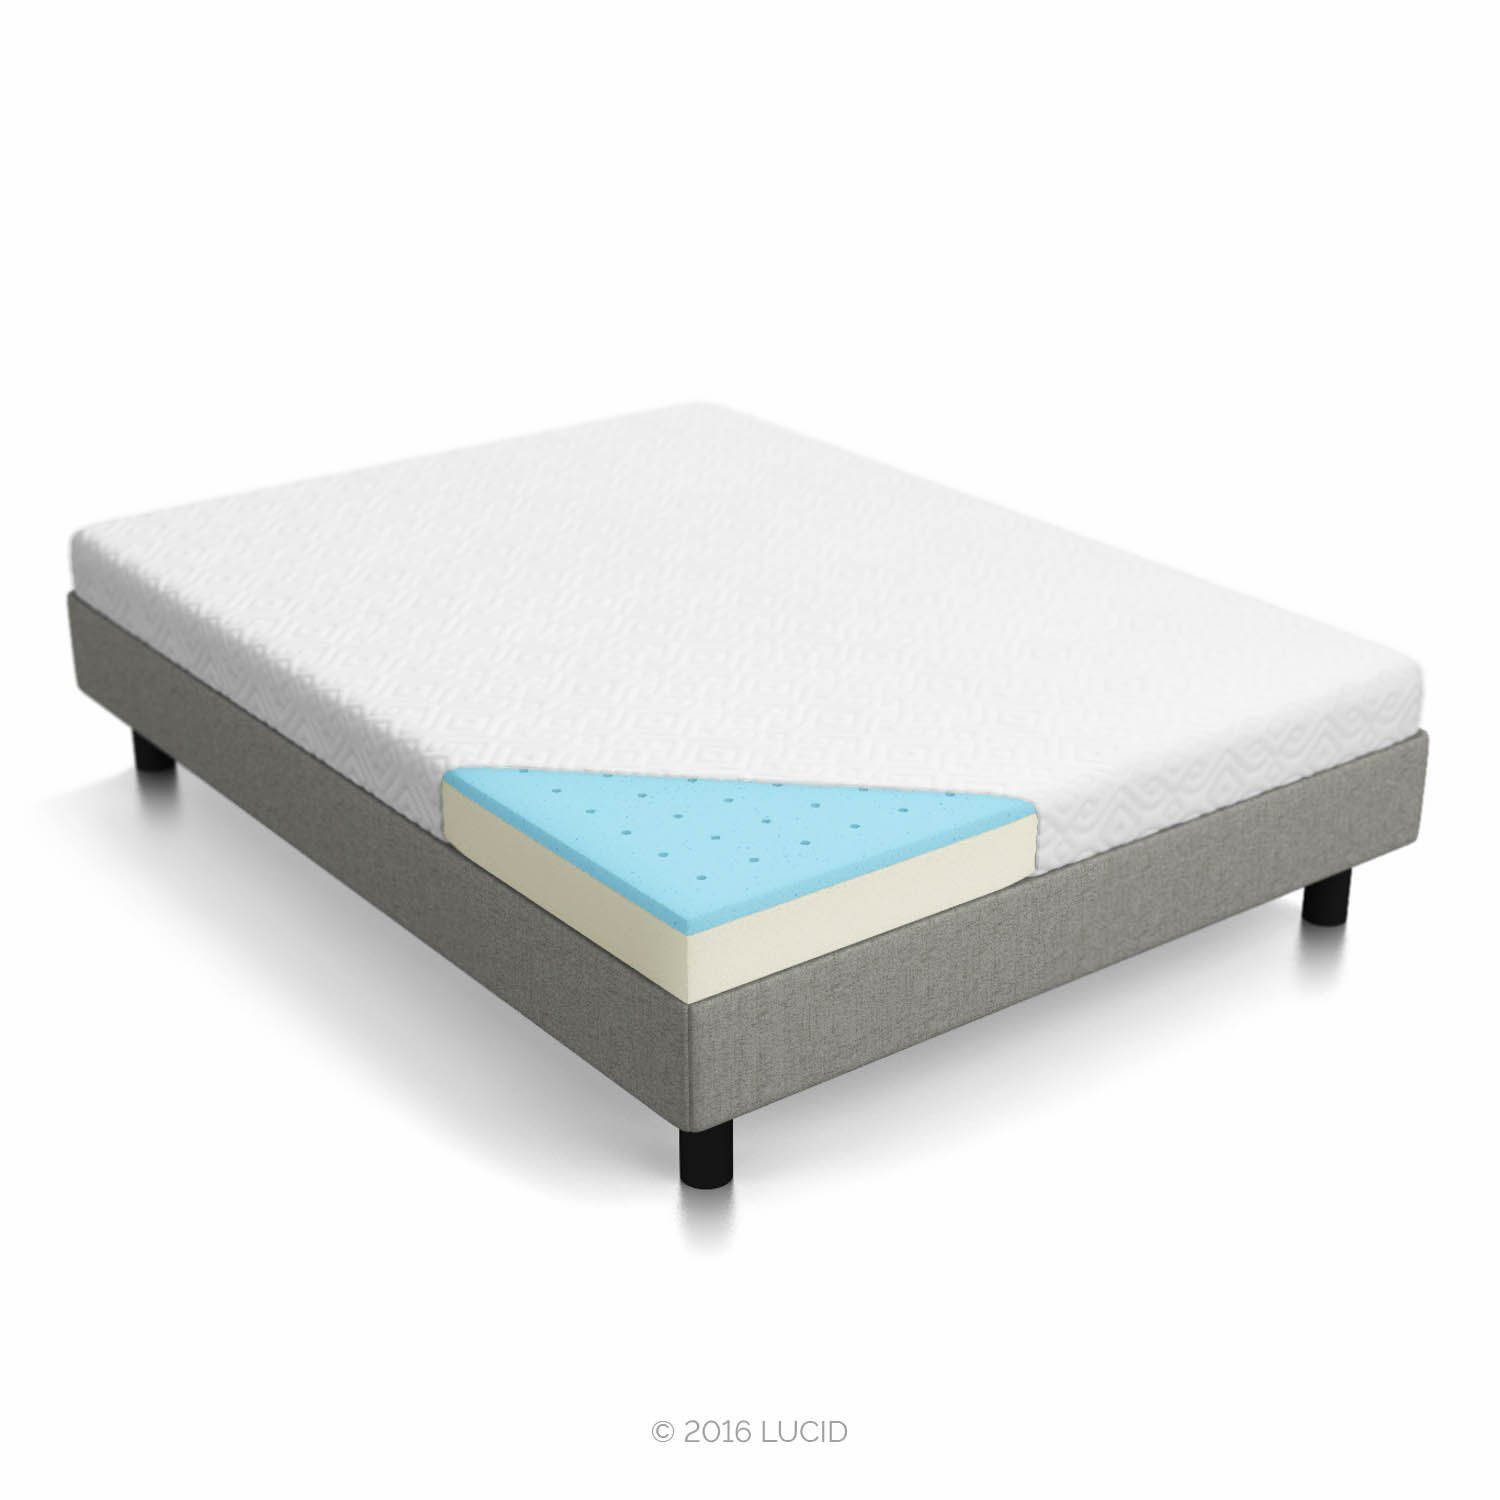 LUCID 5 Inch Gel Memory Foam Mattress - Dual-Layered - CertiPUR-US Certified - Firm Feel - Queen Size